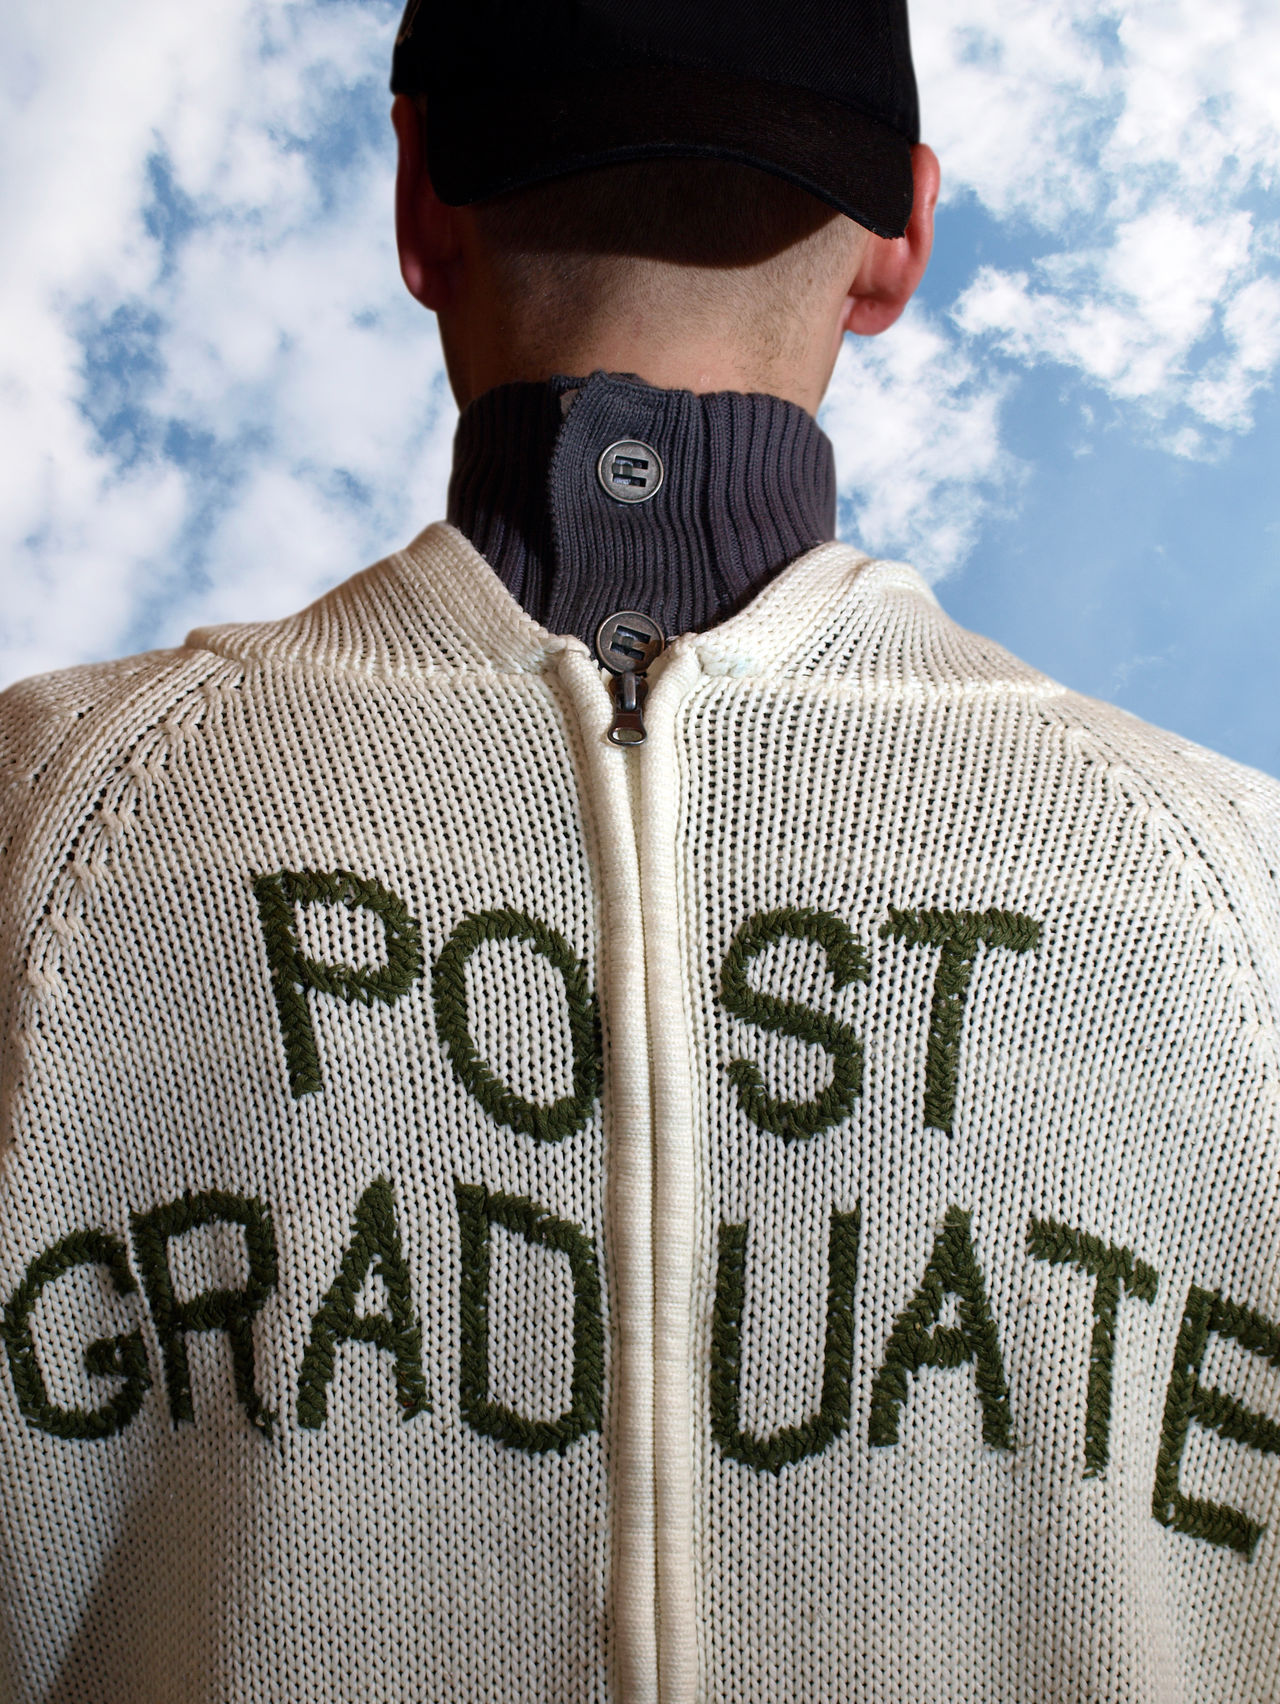 Beautiful stock photos of graduation, Cap, Caucasian Ethnicity, Day, Education